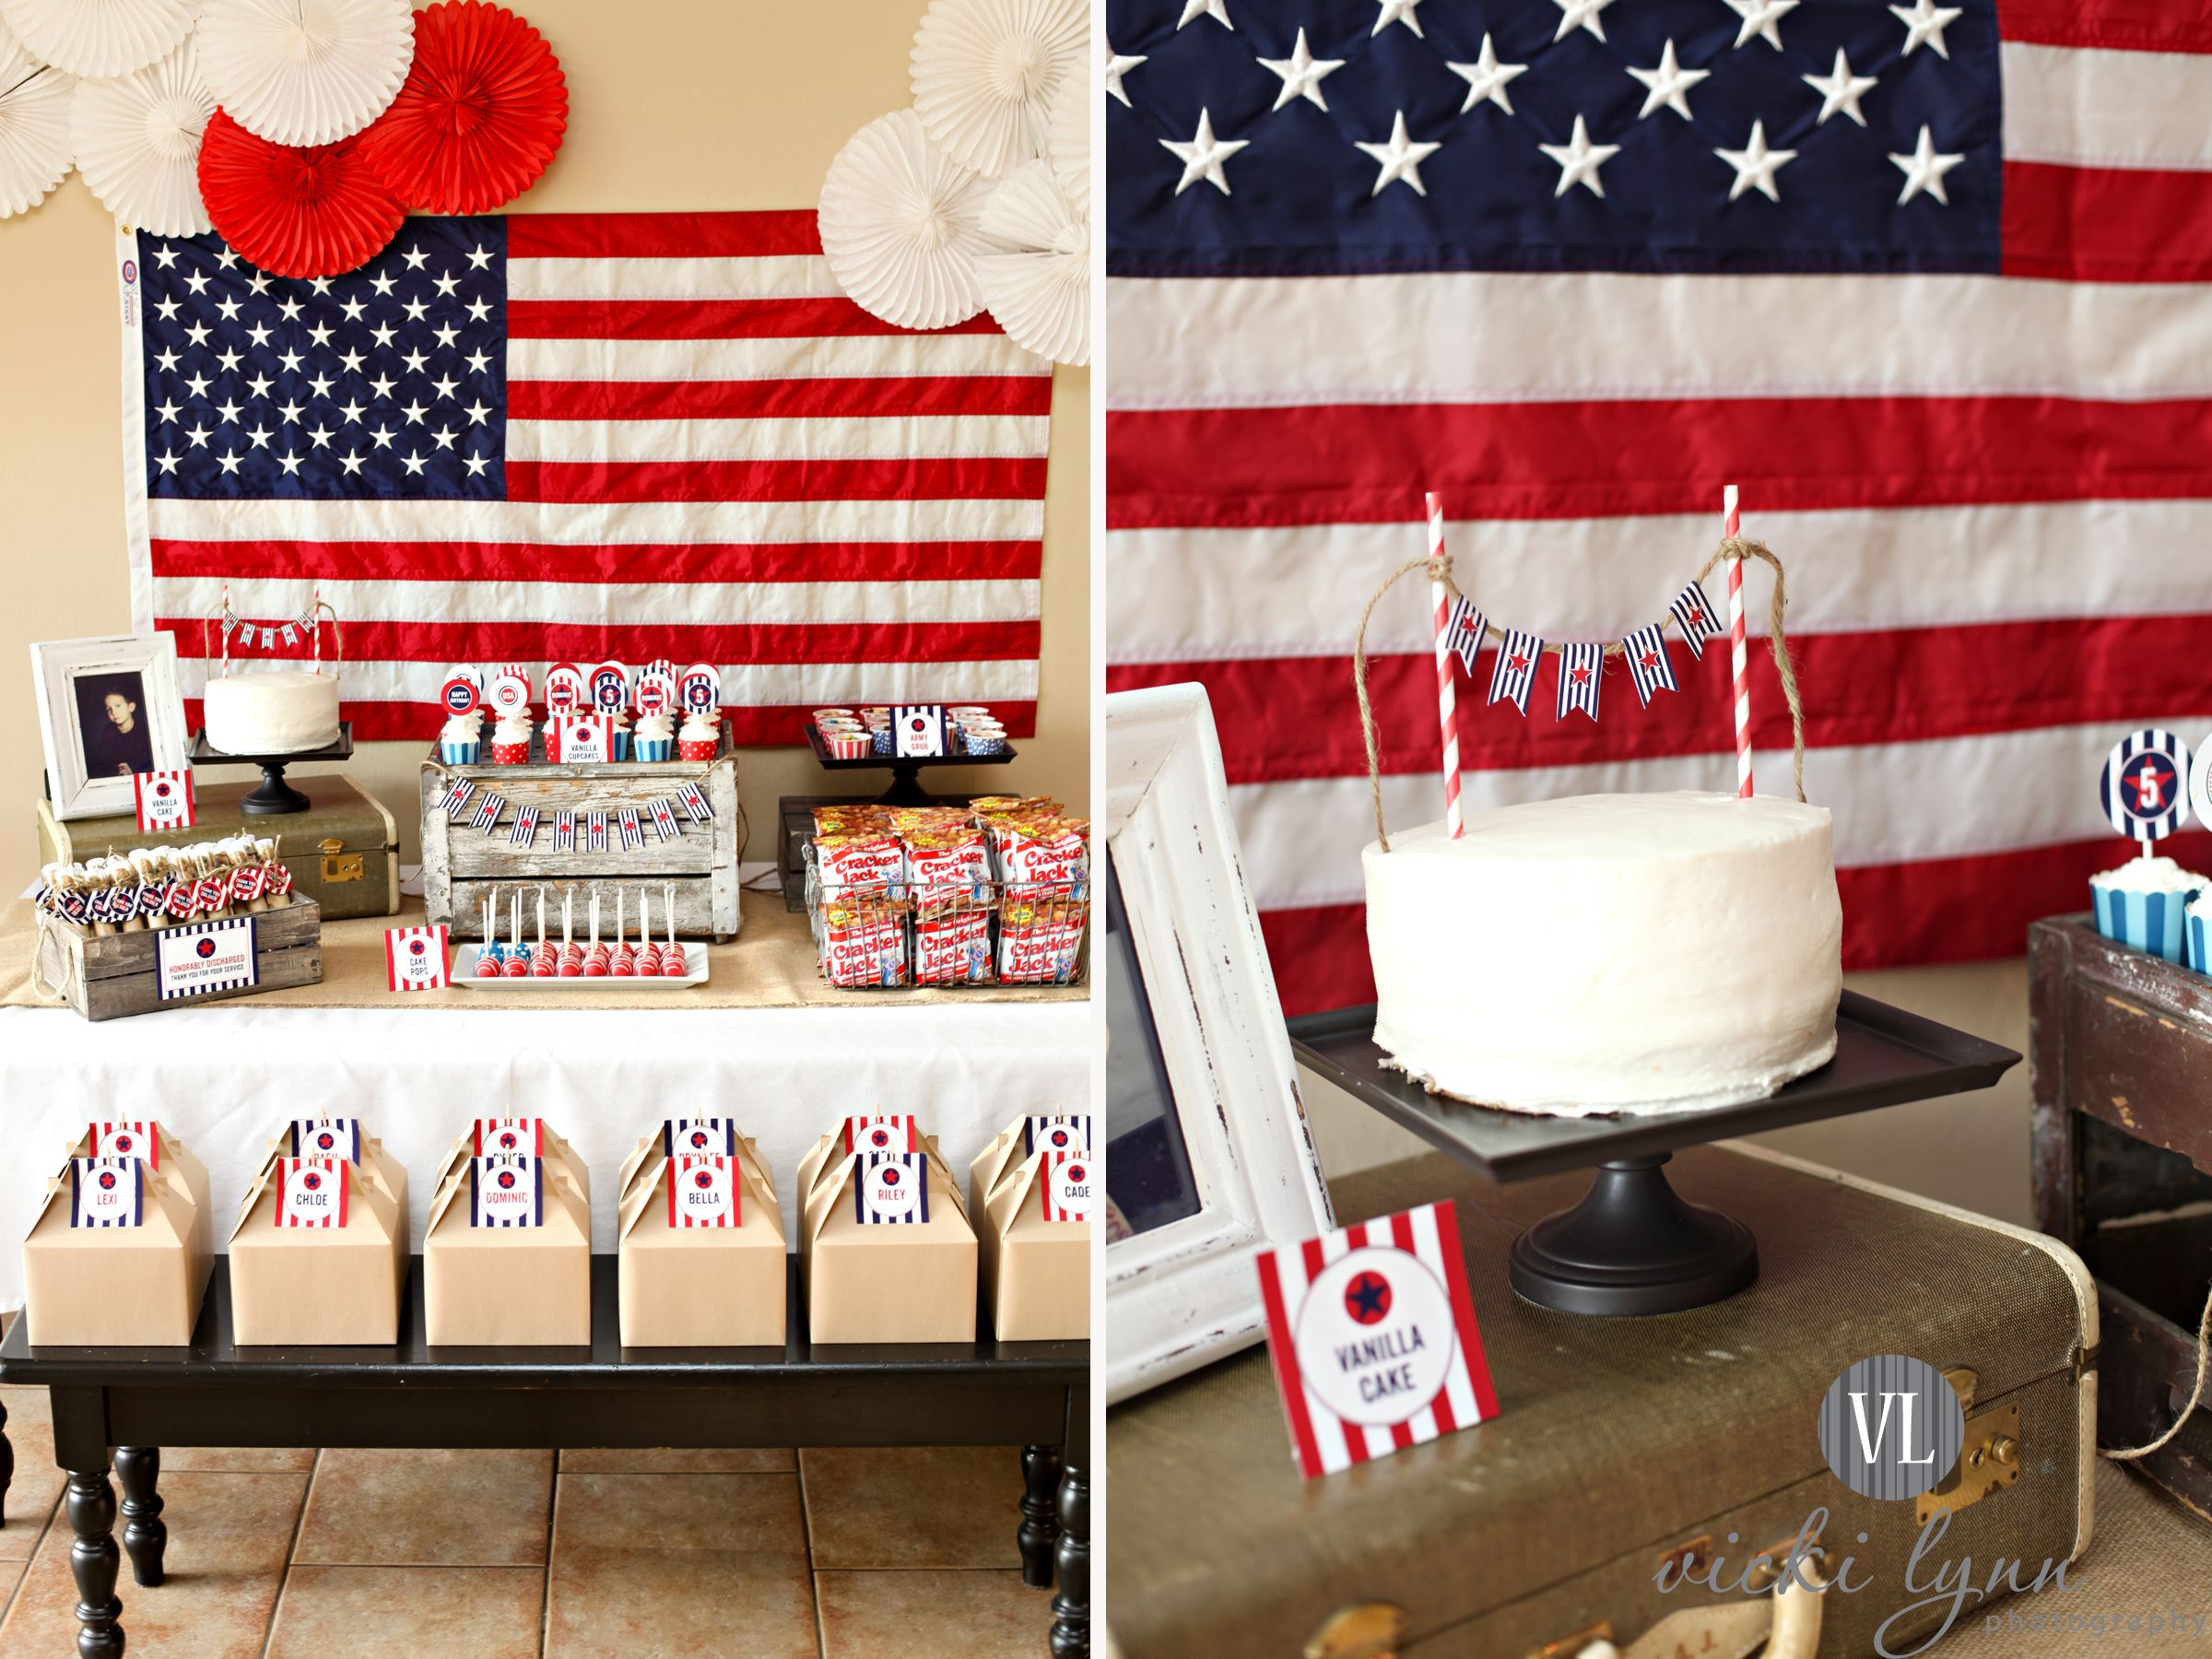 Cake Vicki Lynn Photography Welcome Home Parties Deployment Party Soldier Party